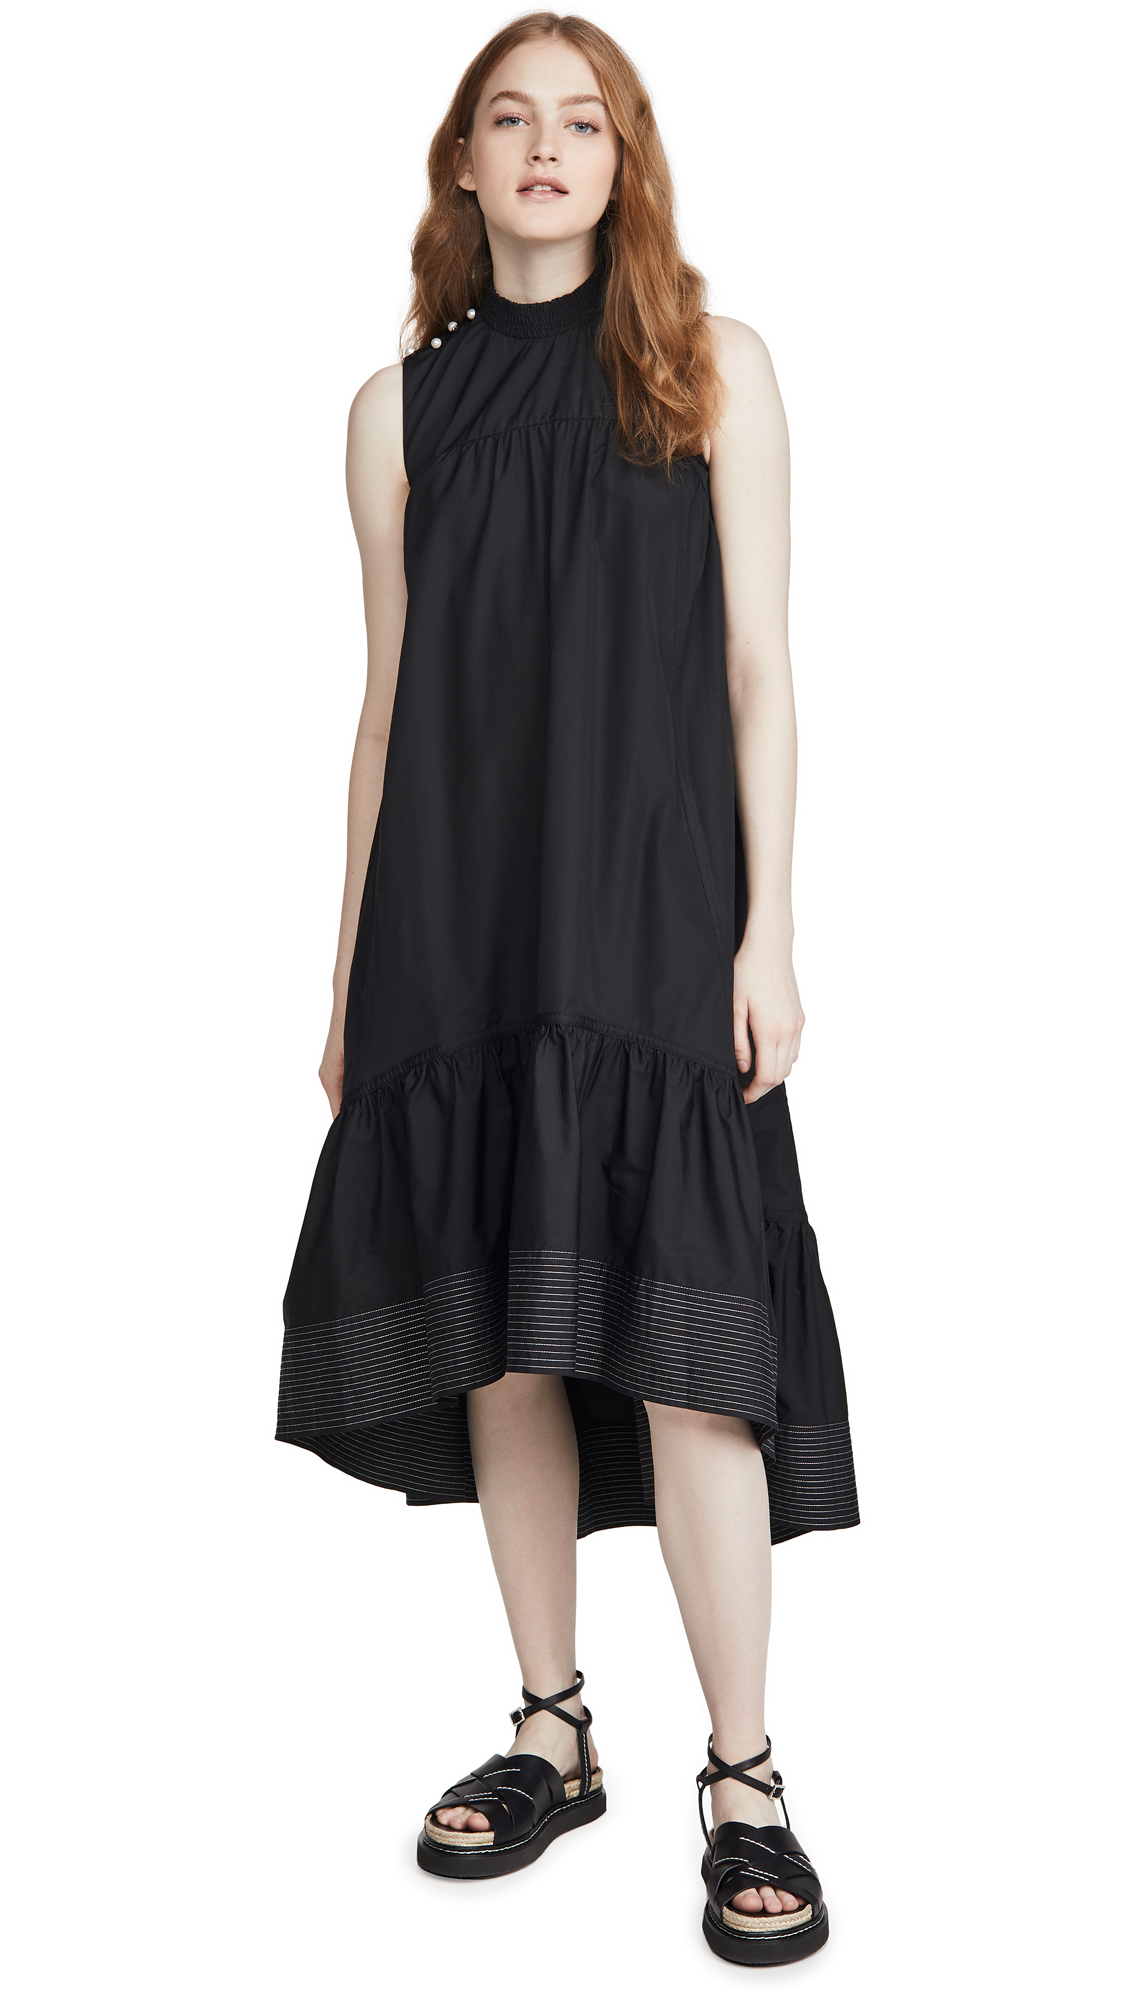 Buy 3.1 Phillip Lim Gathered Dress online beautiful 3.1 Phillip Lim Clothing, Dresses